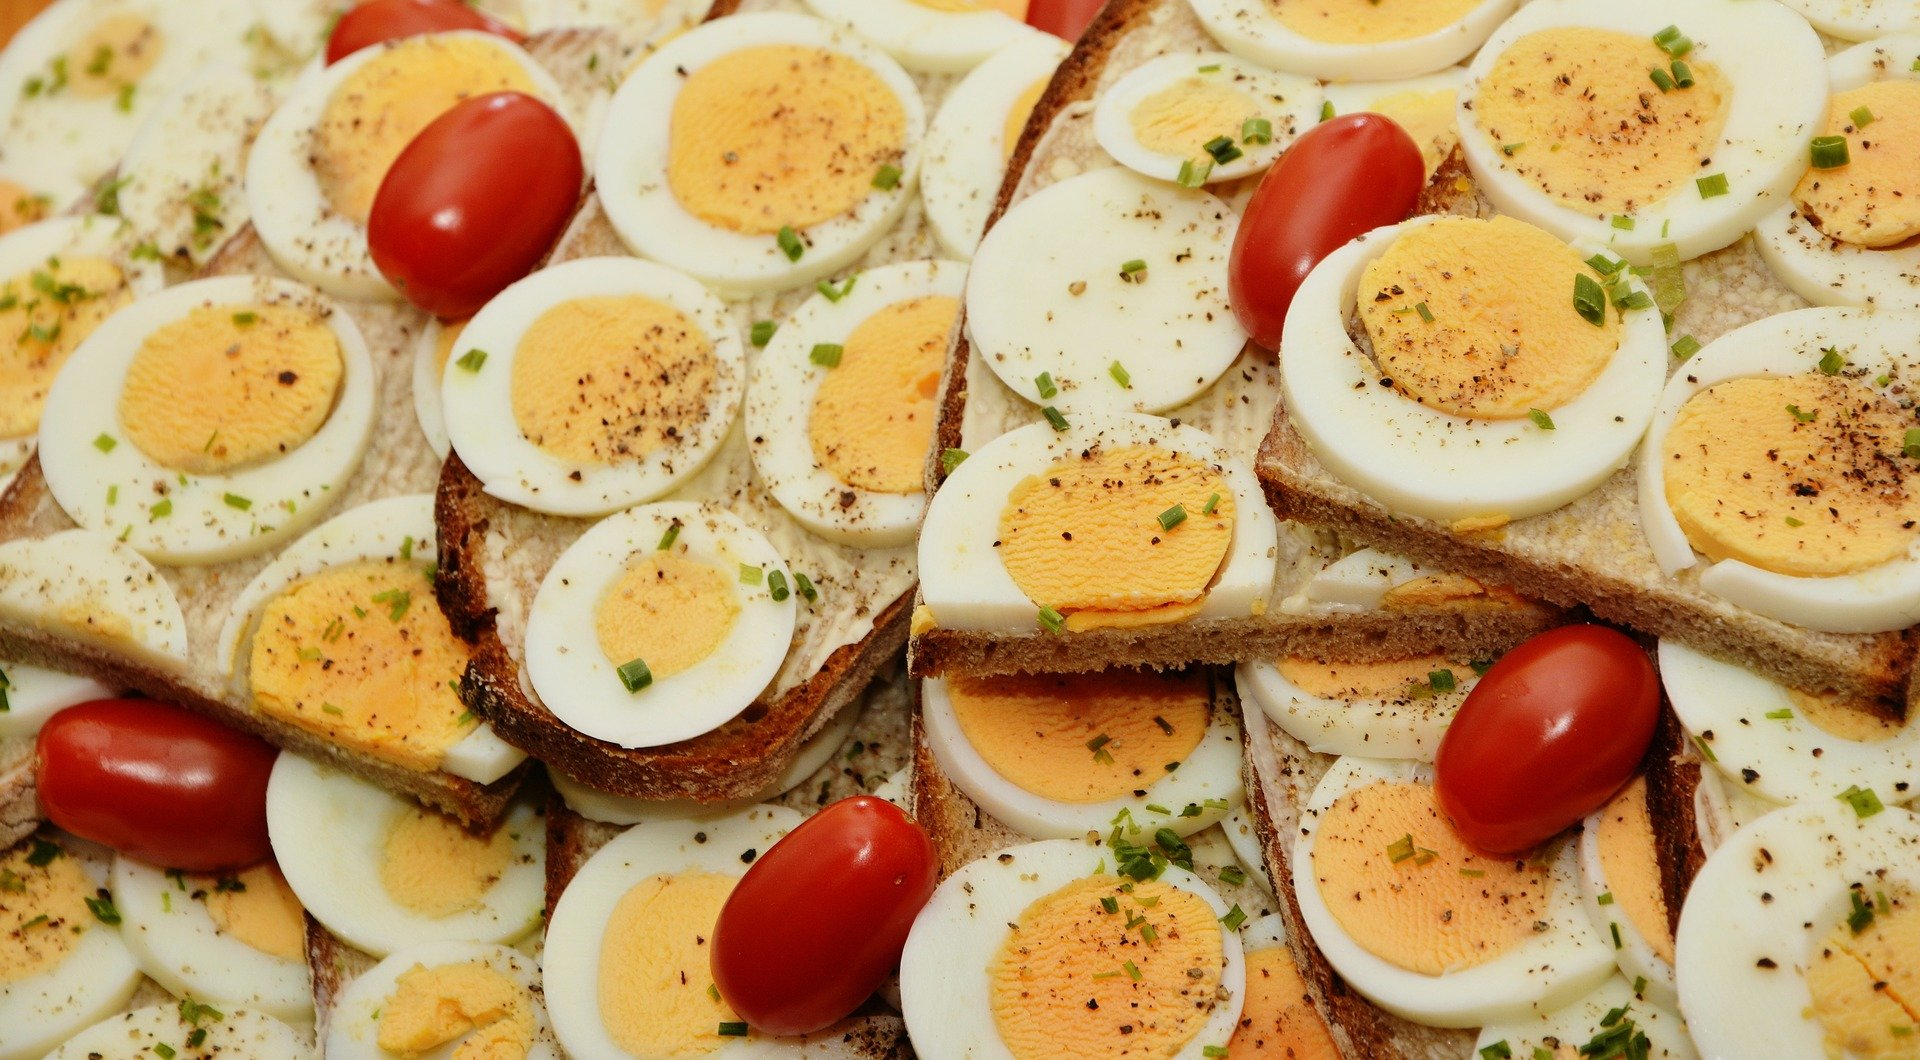 Protein Rich Foodfor Weight Loss and Muscle Building